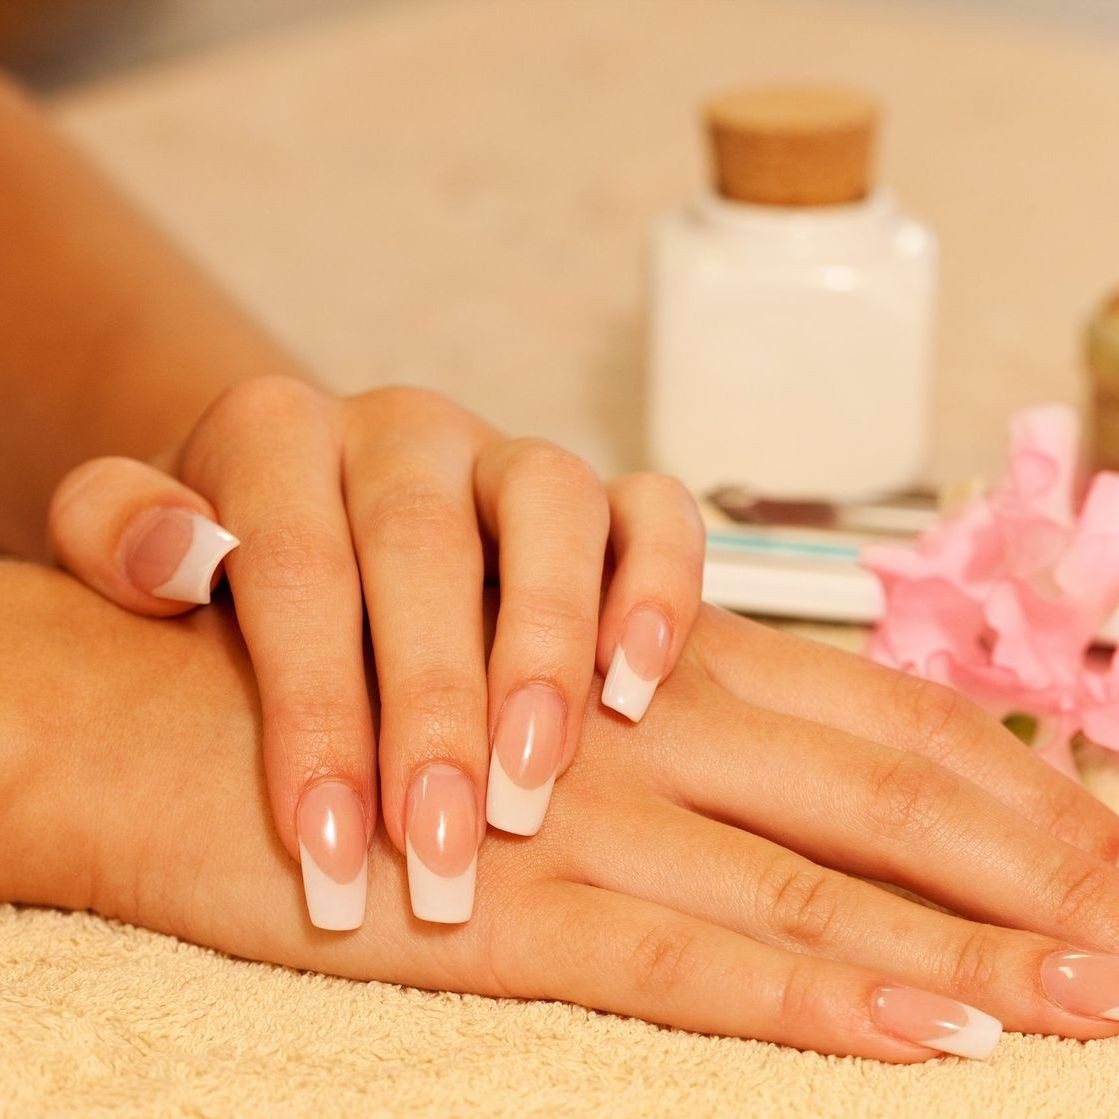 PamperMe Nails & Spa